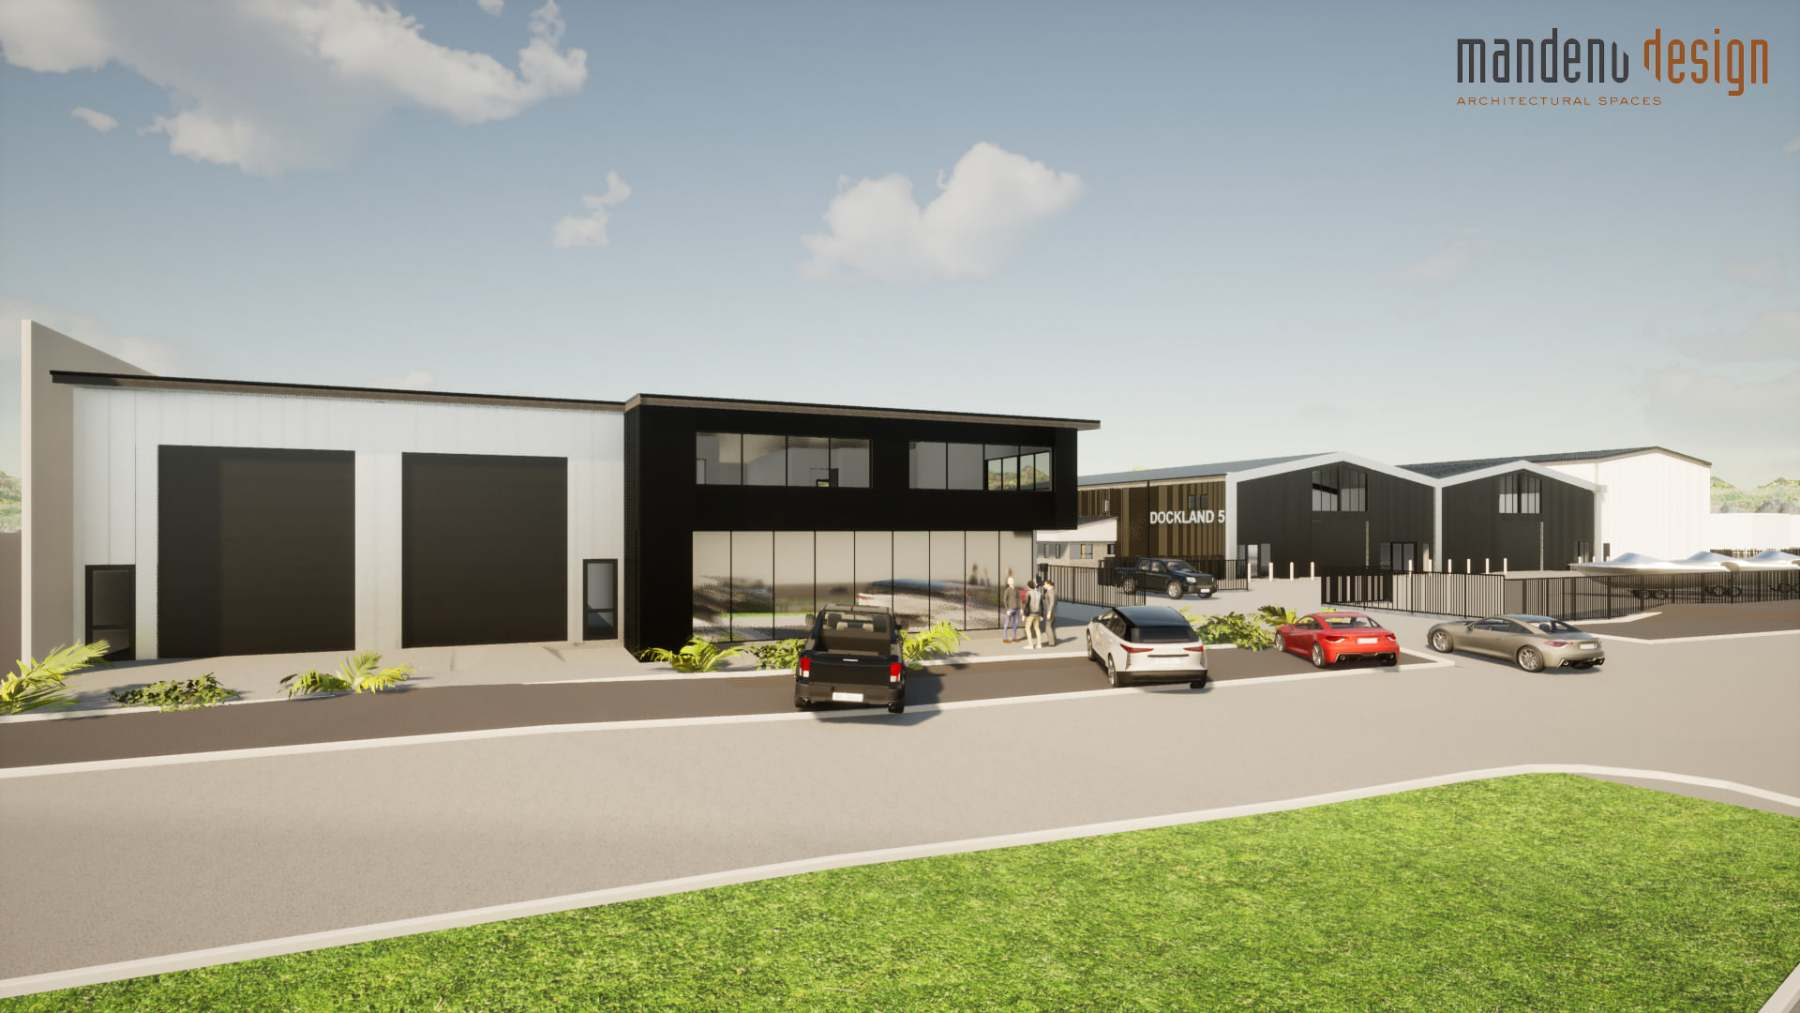 Exciting New Development destined to start soon in Whangarei